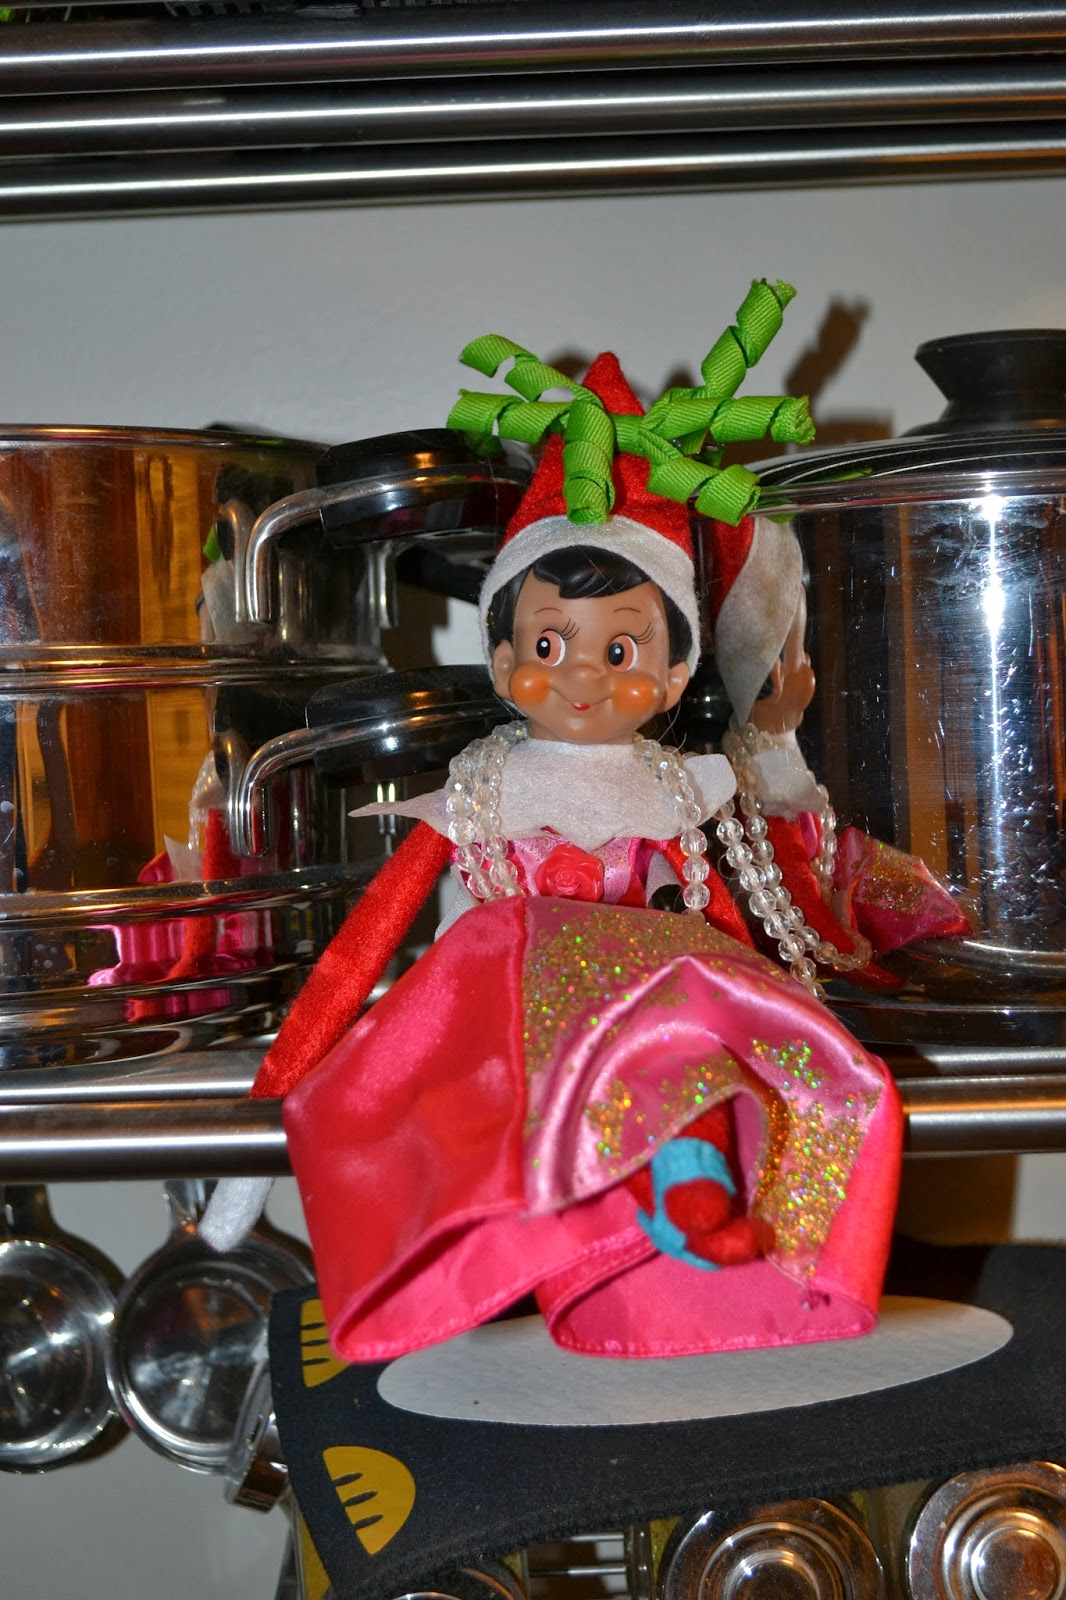 Baby Steps My Life Fat Free Frida And Elf On The Shelf